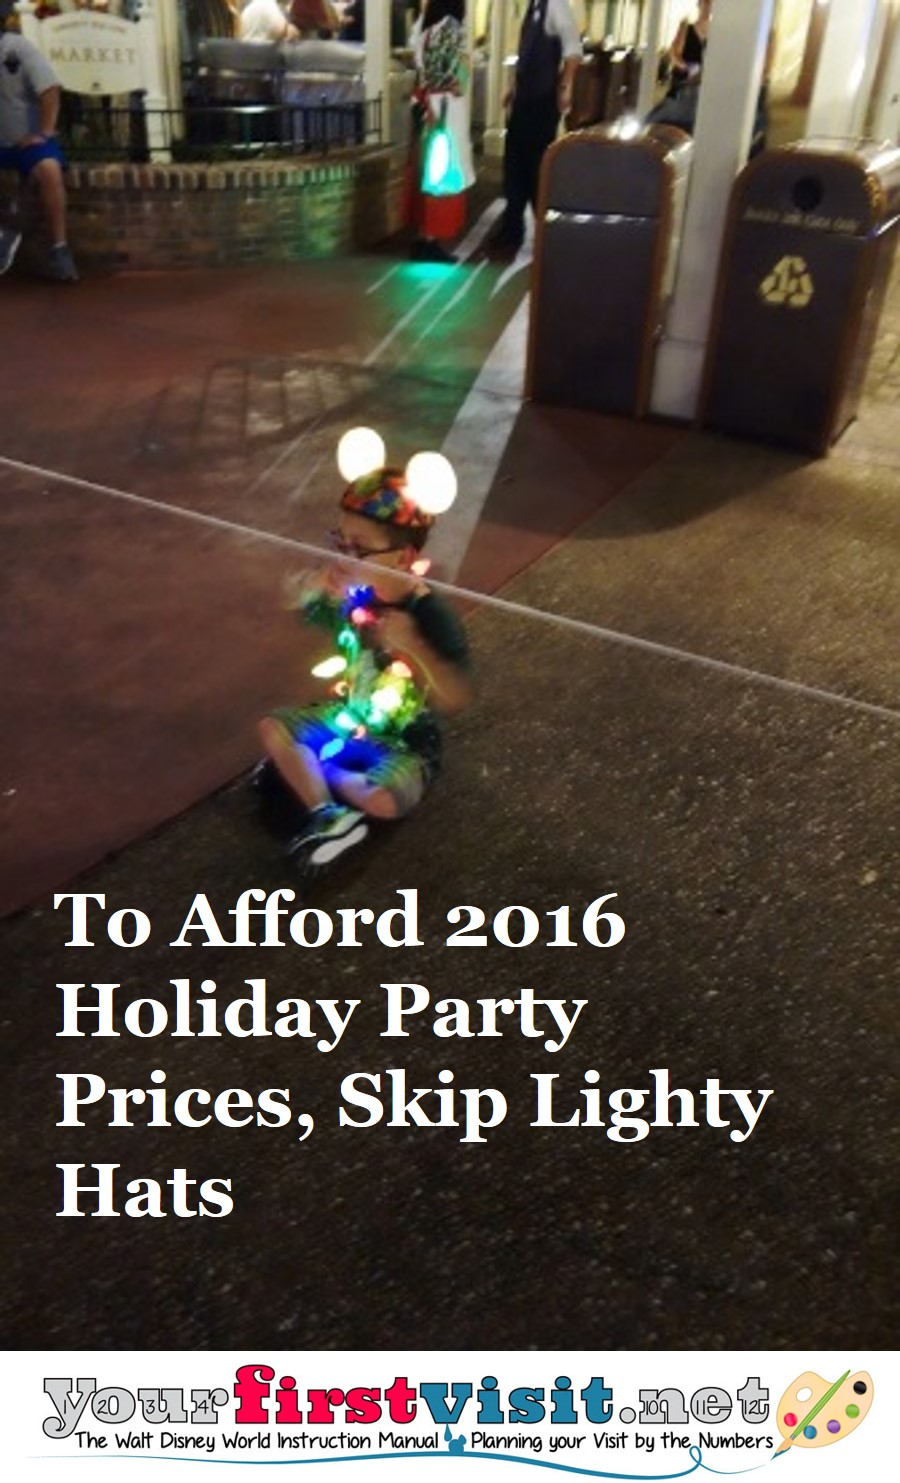 2016 Party Prices Go Up 10-25 Percent from yourfirstvisit.net